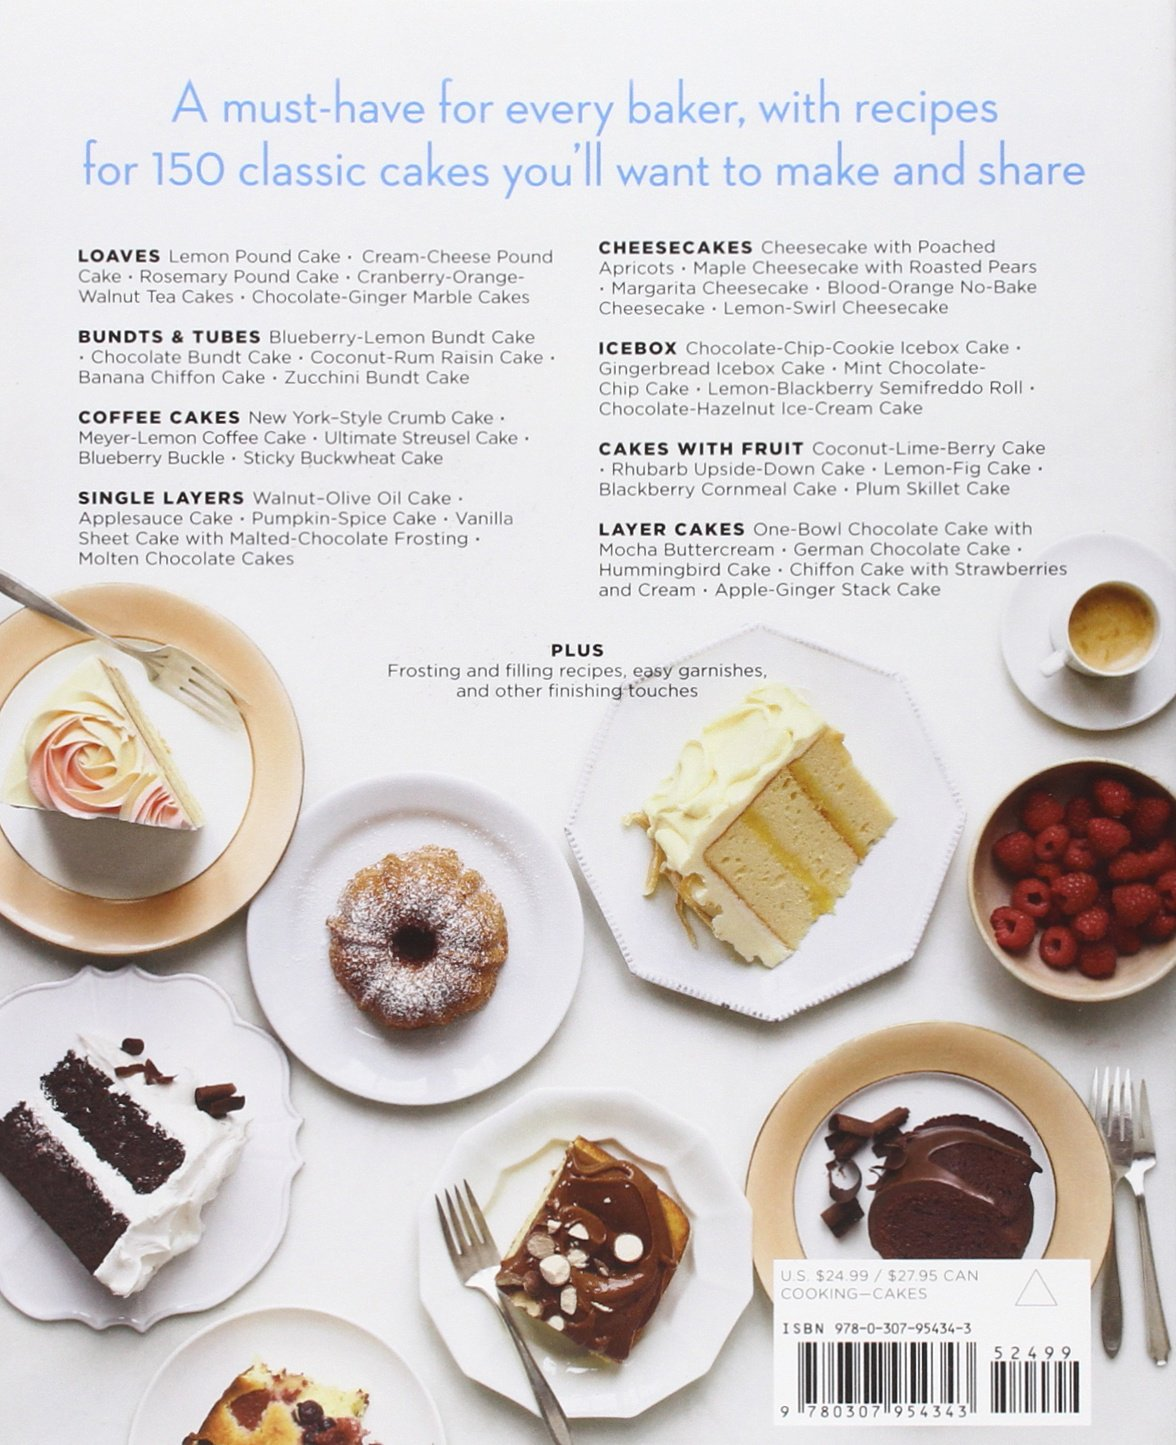 81Z2LDWqp9L - Martha Stewart's Cakes: our first-ever book of bundts, loaves, layers, coffee cakes, and more